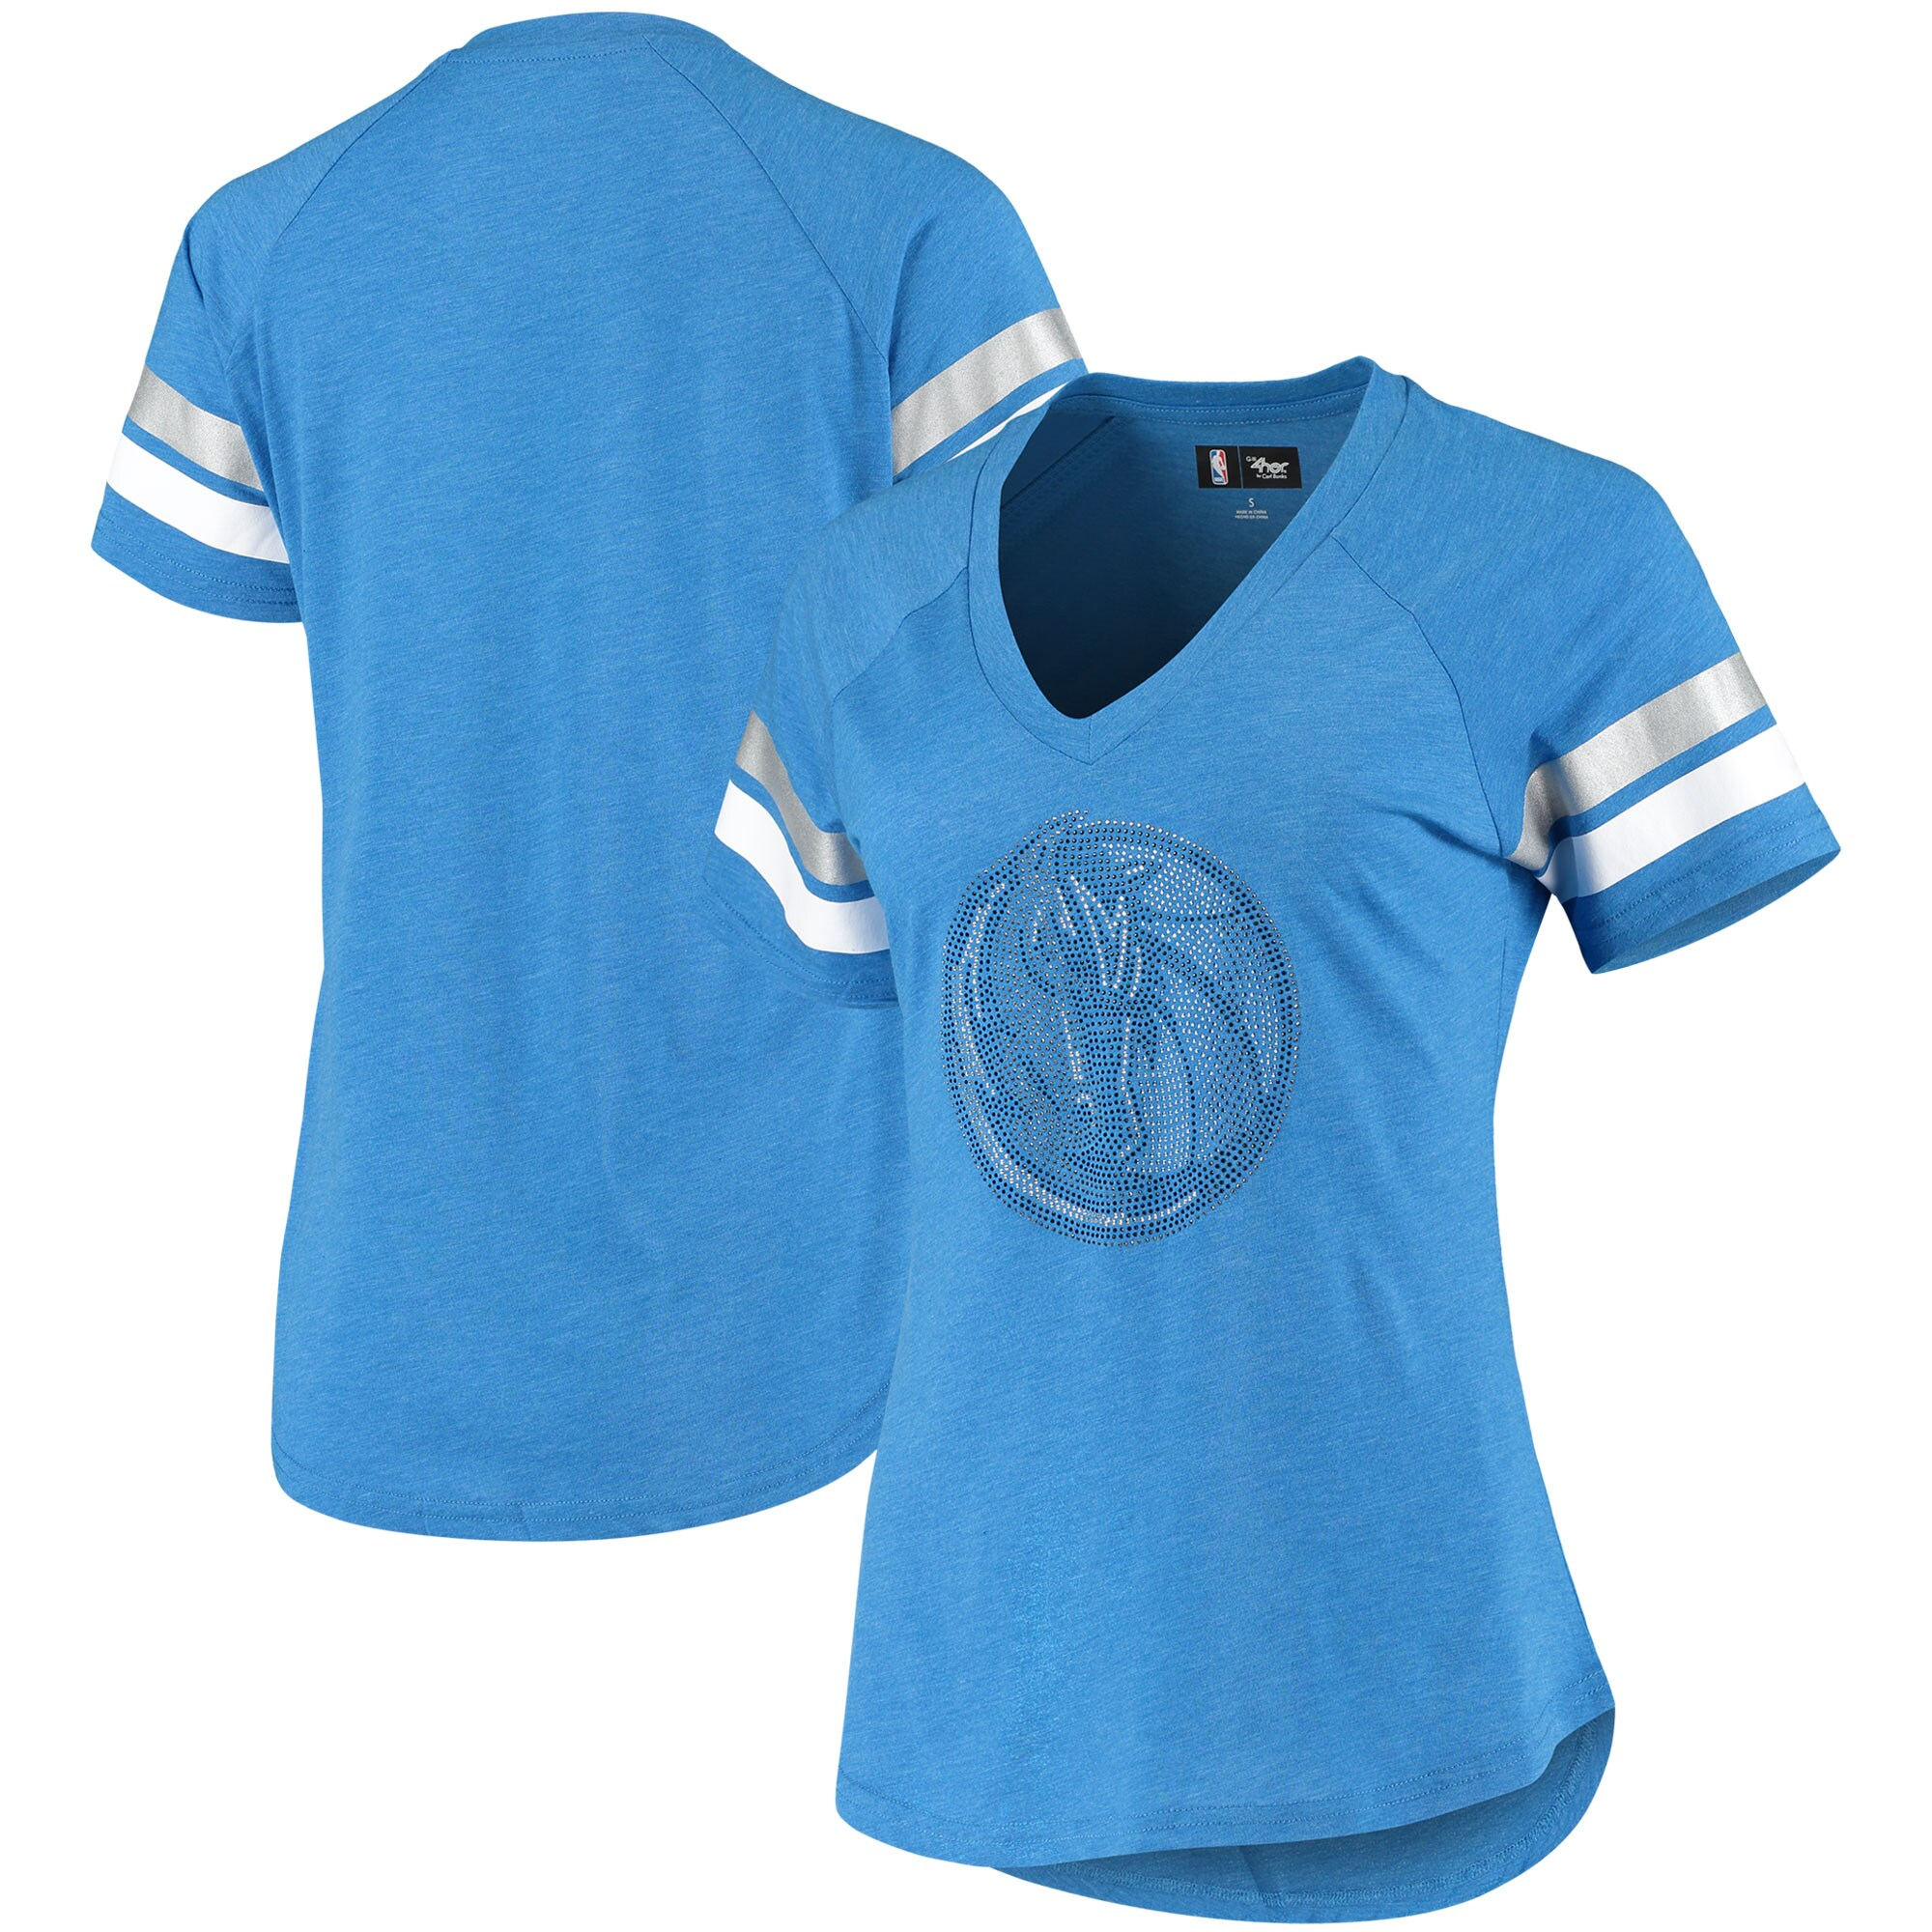 Dallas Mavericks G-III 4Her by Carl Banks Women's Triple Double Rhinestone Tri-Blend V-Neck T-Shirt - Heathered Blue